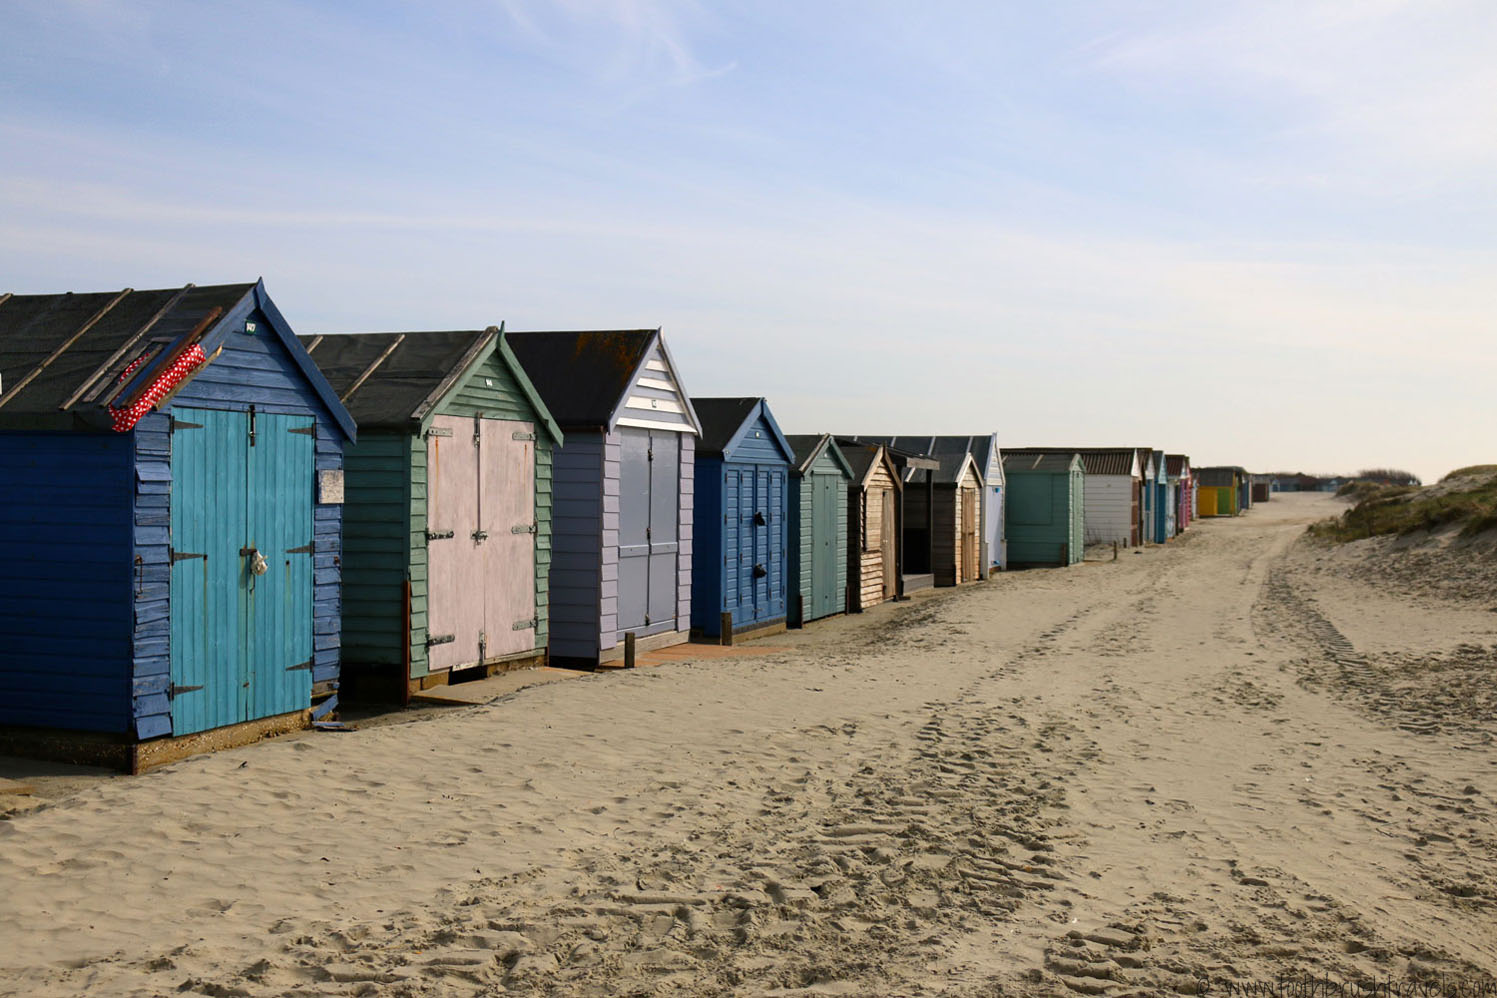 West Wittering beach - a local's guide to Chichester, England